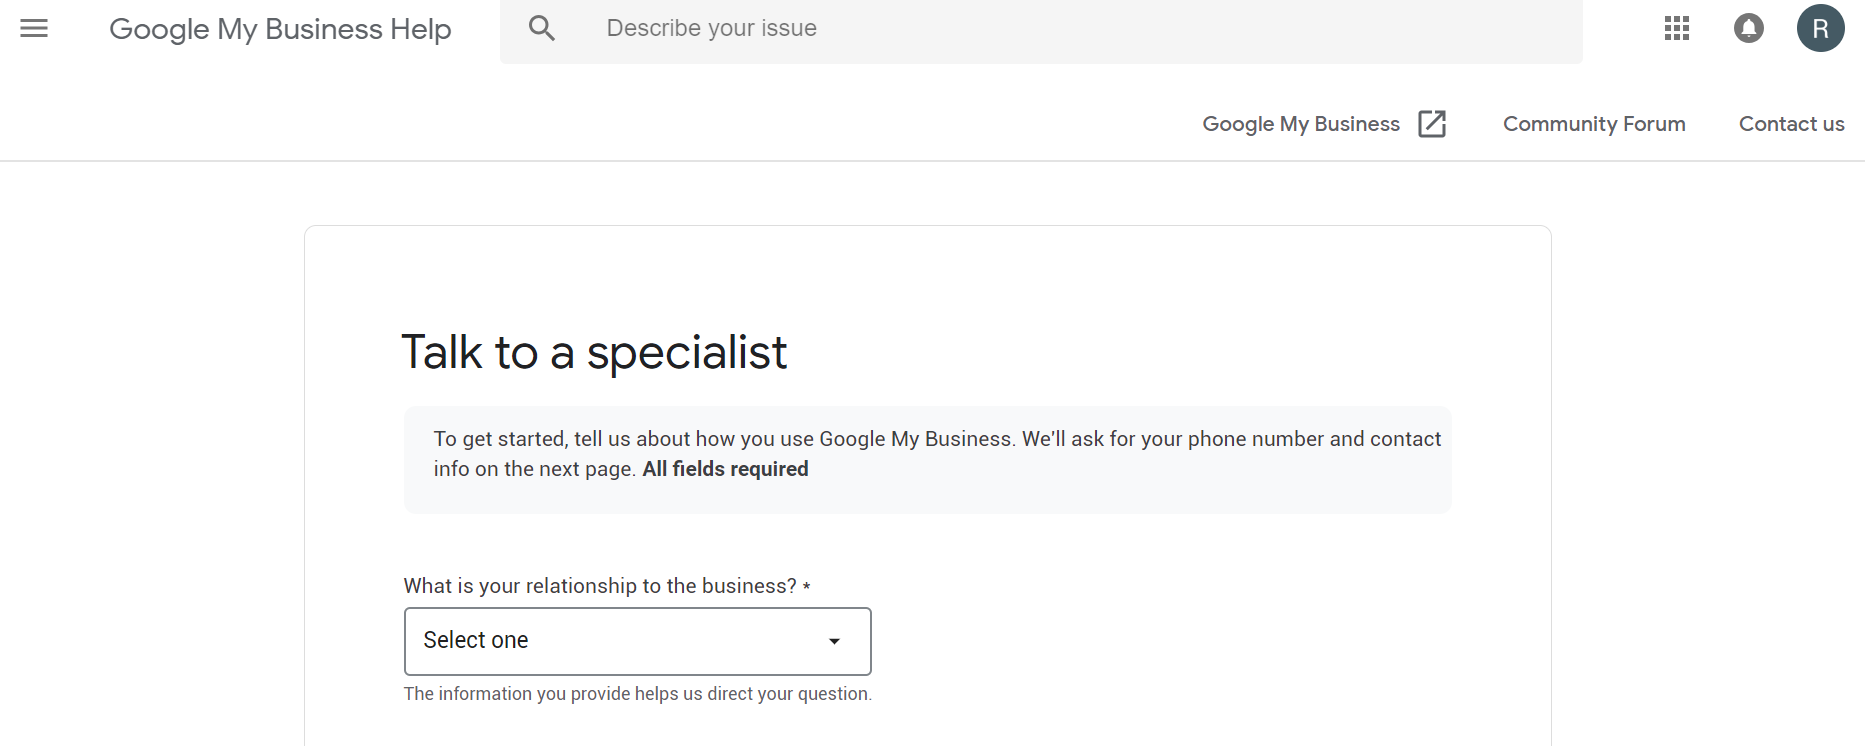 google my business talk to a specialist